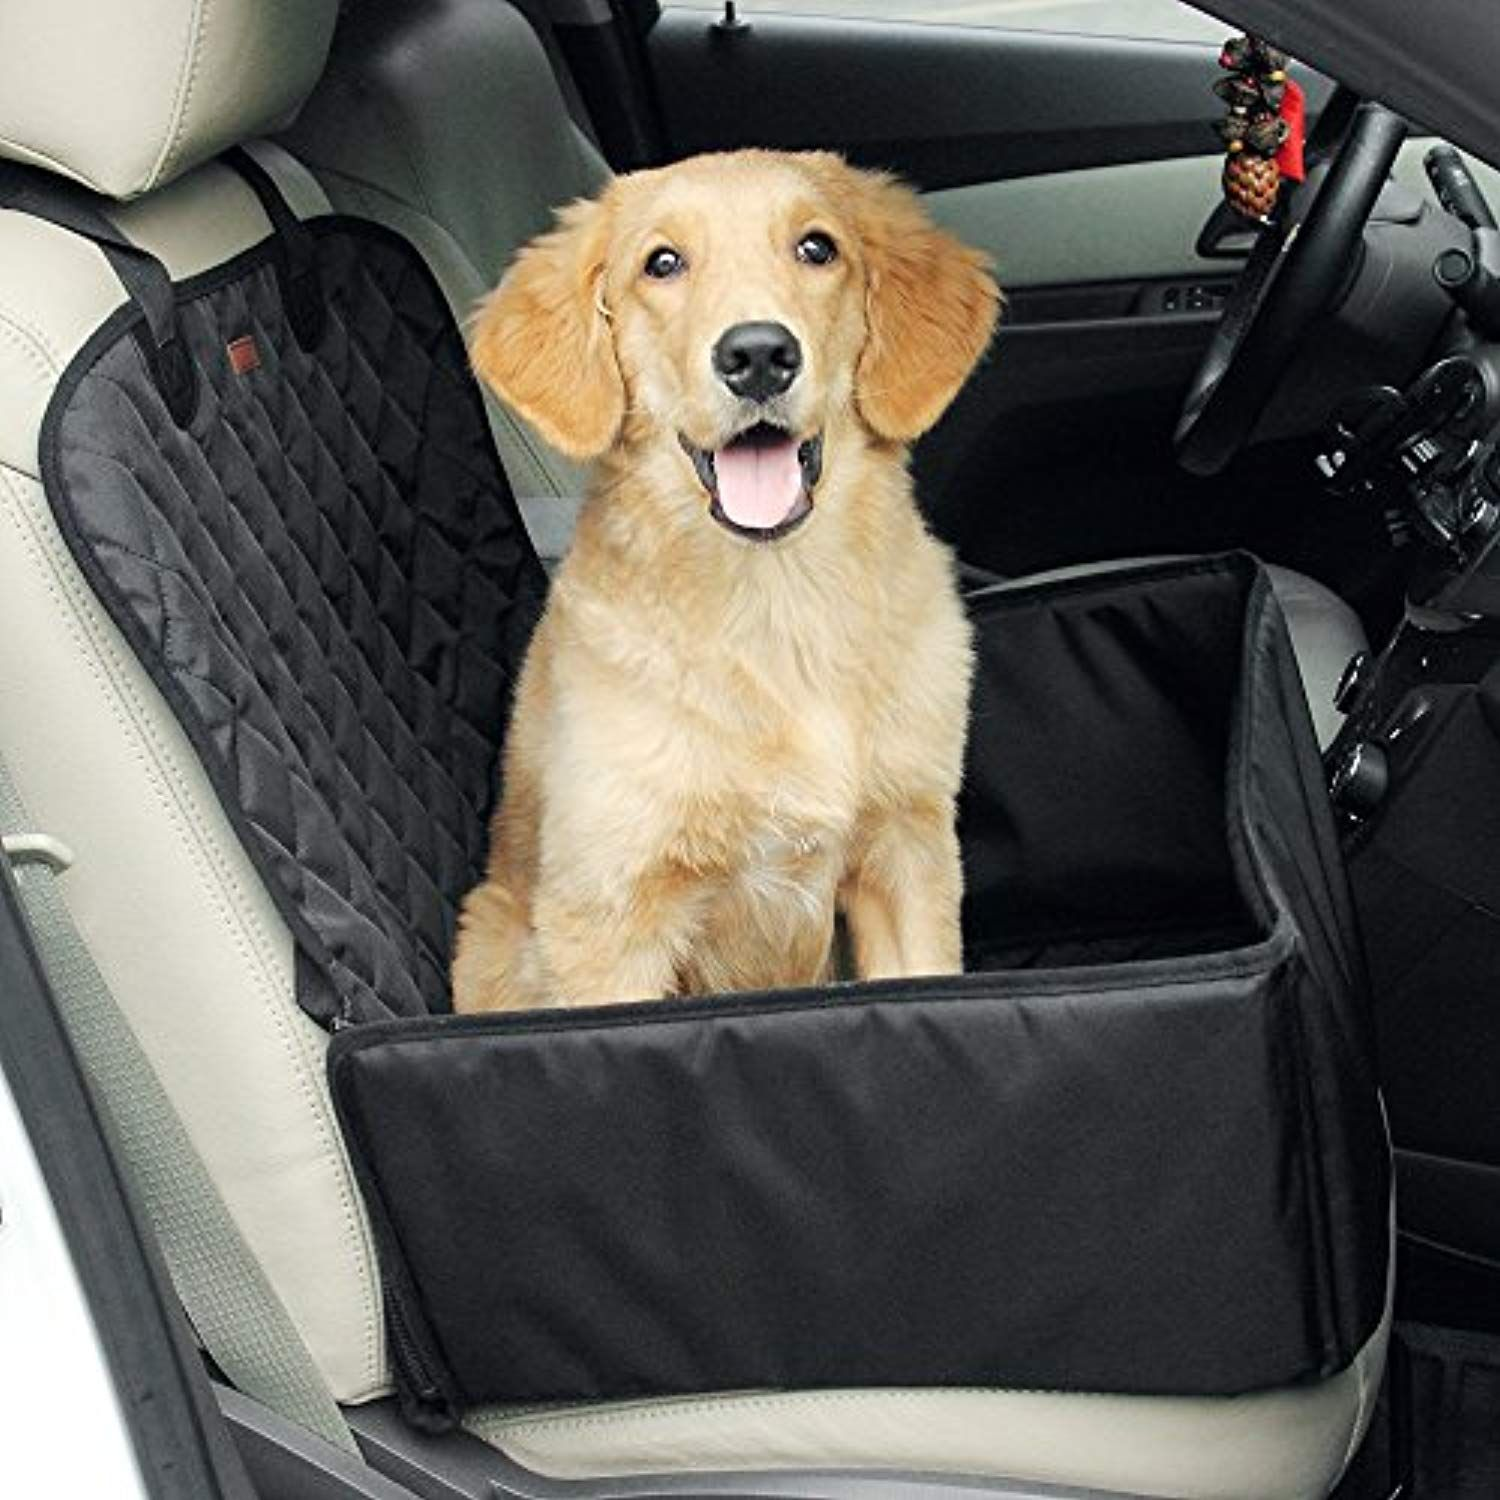 Amorus 2 In 1 Waterproof Dog Pet Car Seat Covers Washable Automotive Cat Carrier For Travel Black Rea Pet Car Seat Covers Pet Car Seat Dog Car Seat Cover